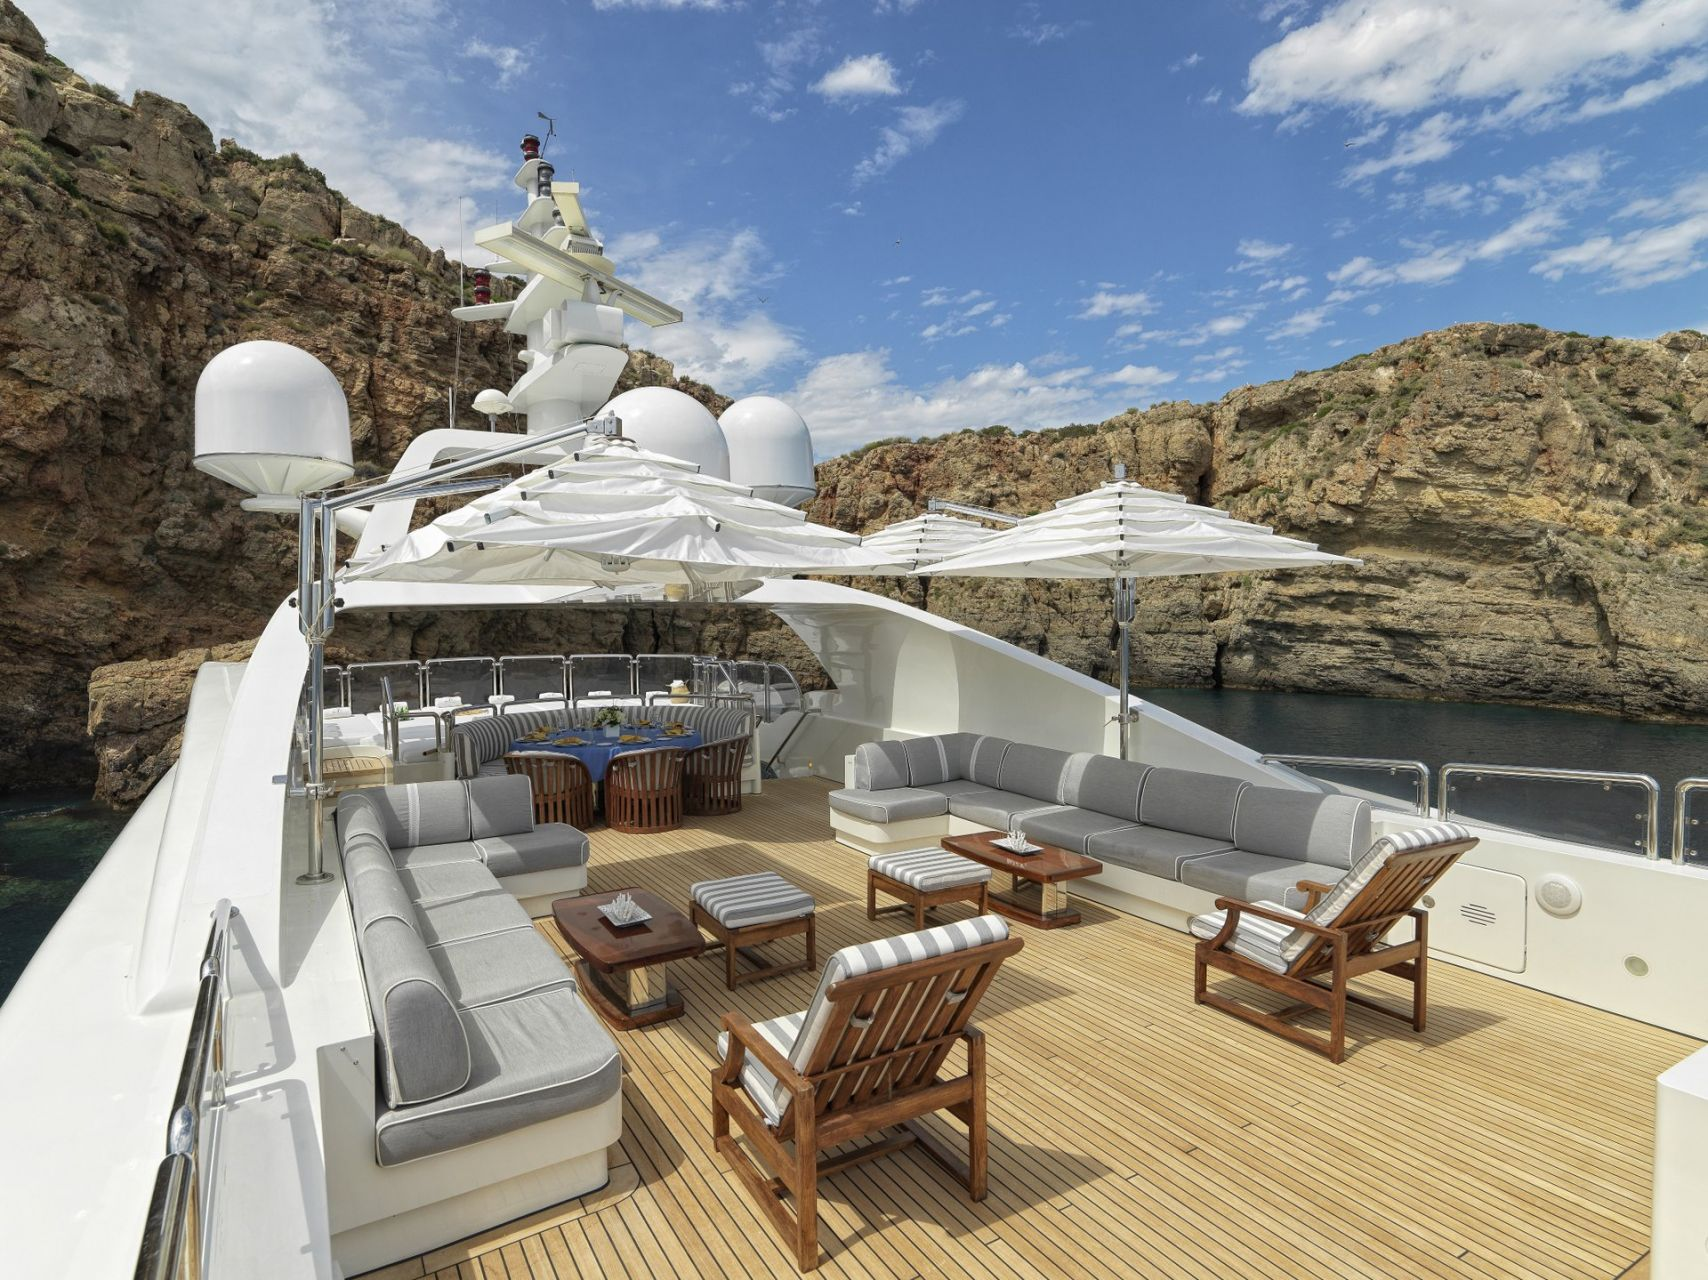 m/y alexandra yacht for charter seating deck